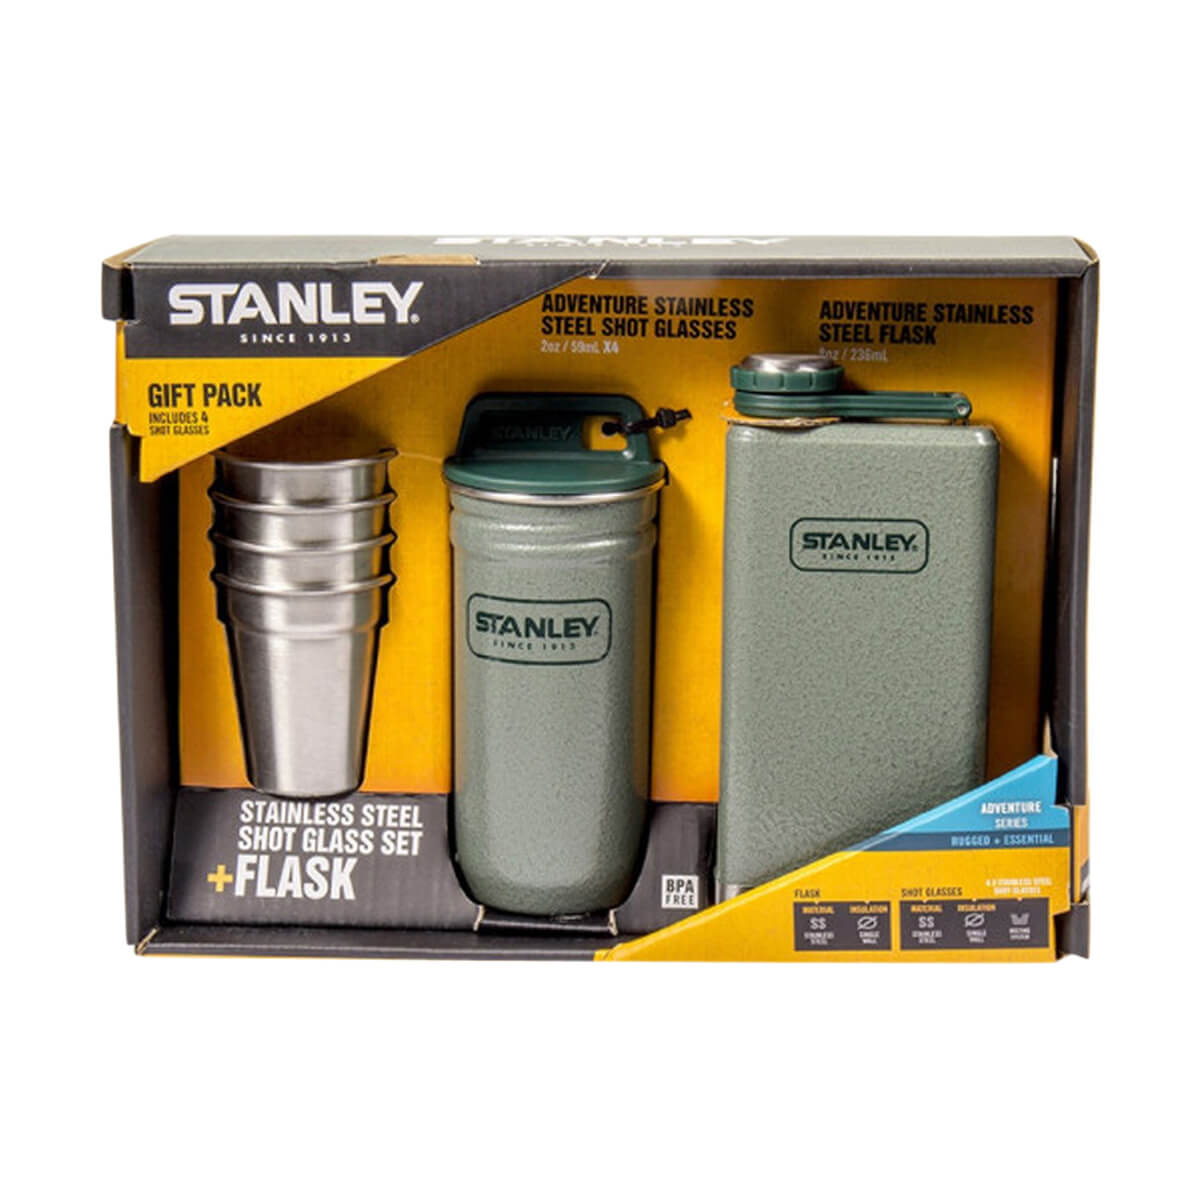 Adventure Stainless Steel Shots + 8oz. Flask Gift Set